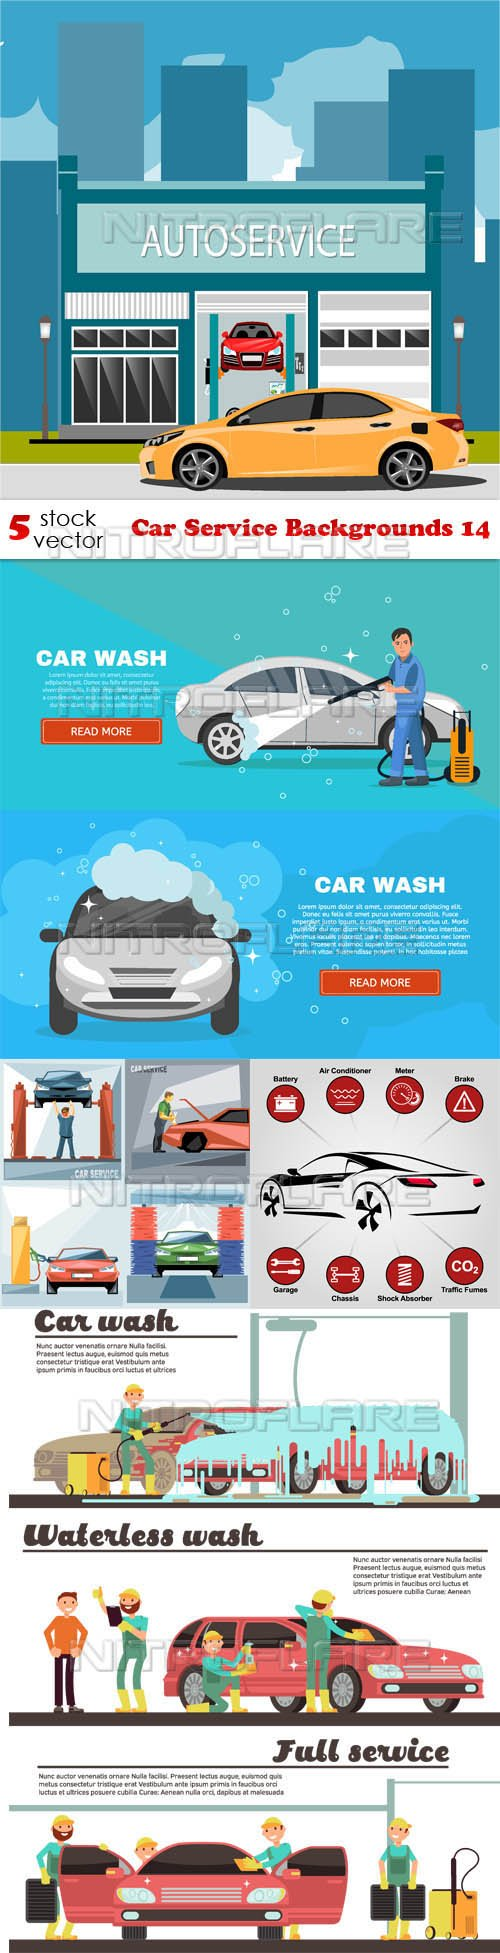 Vectors - Car Service Backgrounds 14